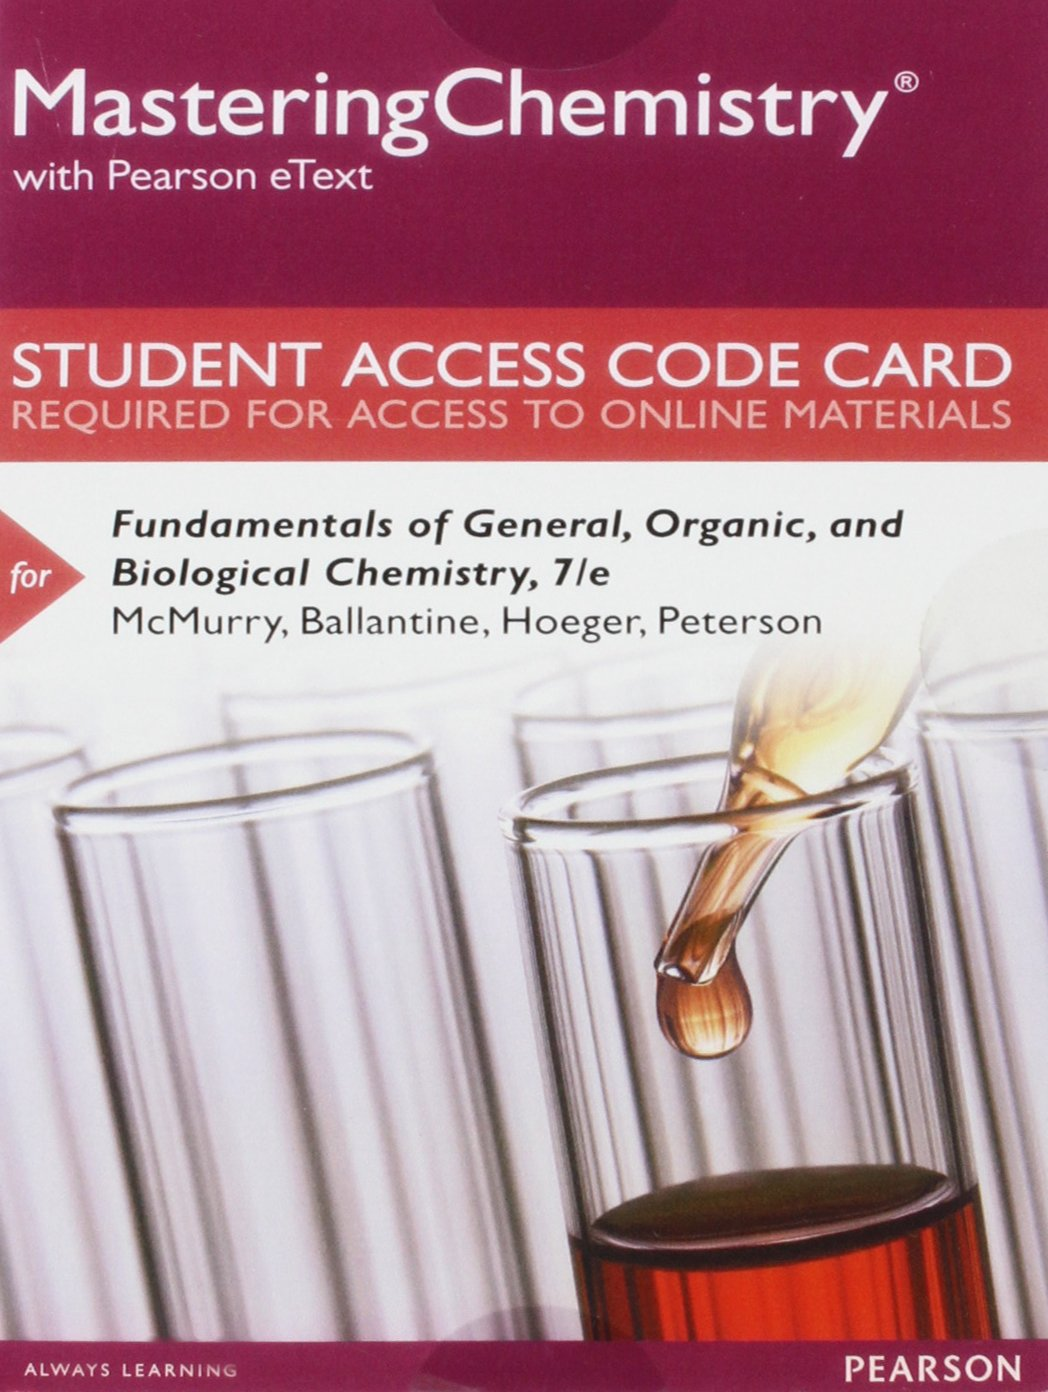 Amazon.com: MasteringChemistry with Pearson eText -- Standalone Access Card  -- for Fundamentals of General, Organic, and Biological Chemistry (7th  Edition) ...